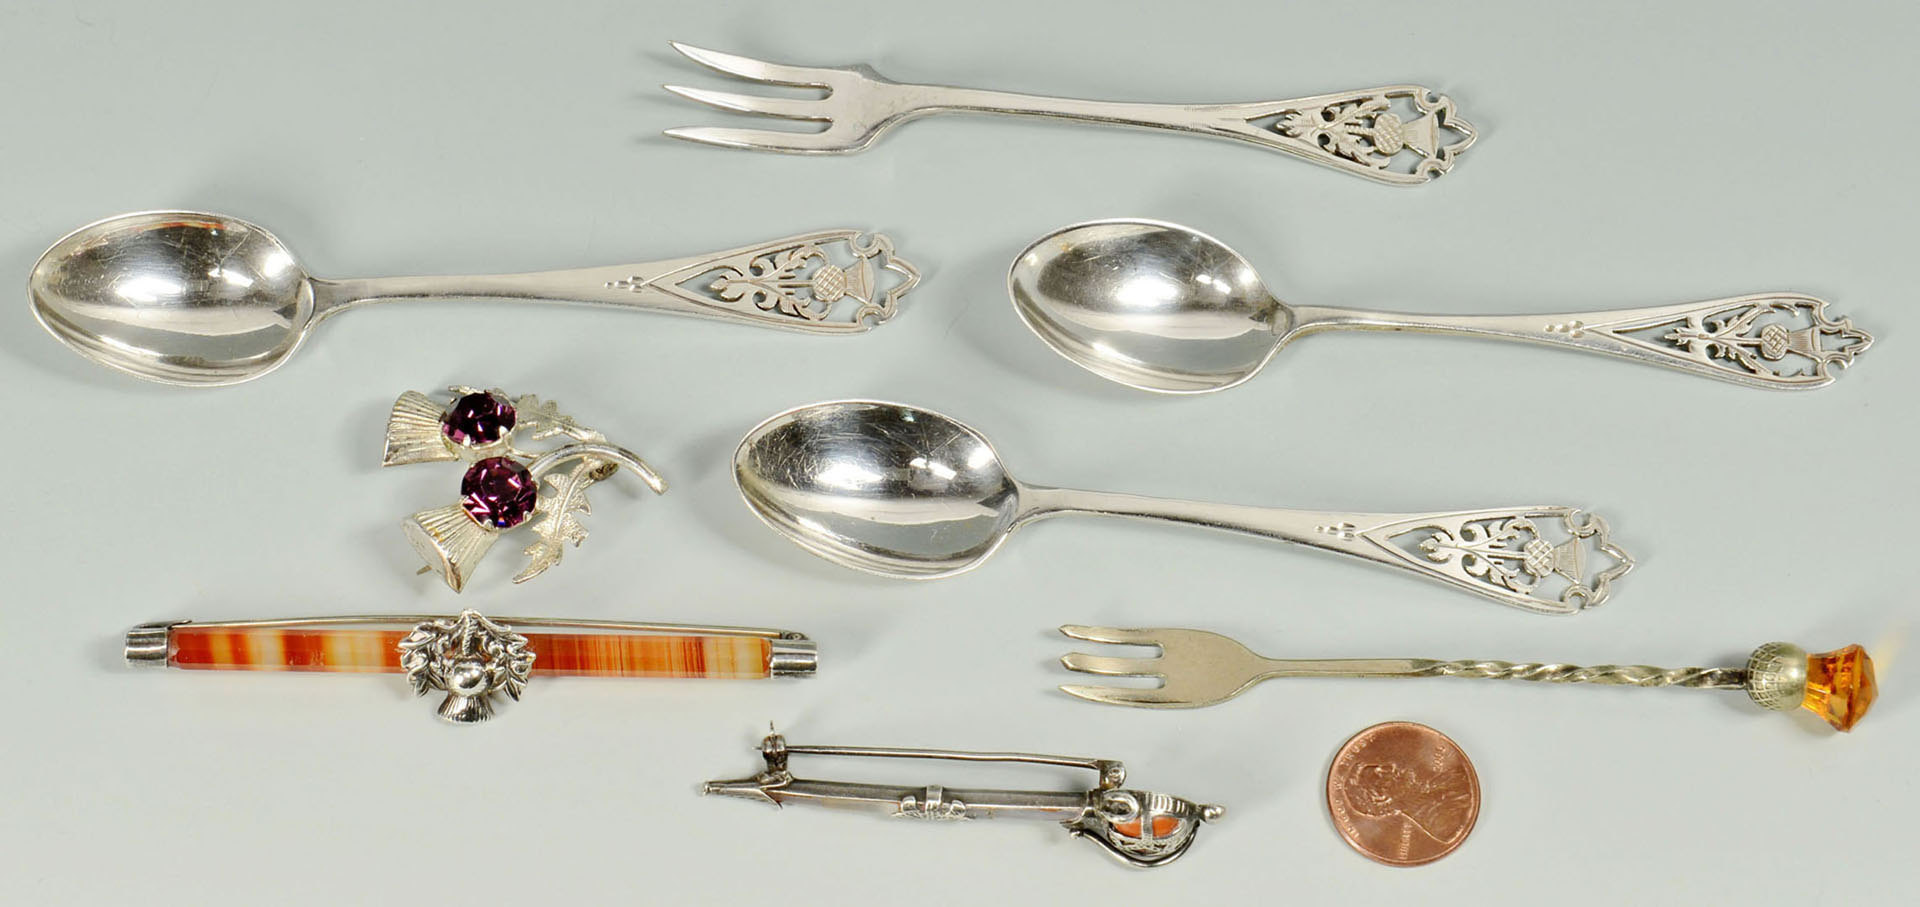 Lot 503: Scottish style Jewelry and Silverware